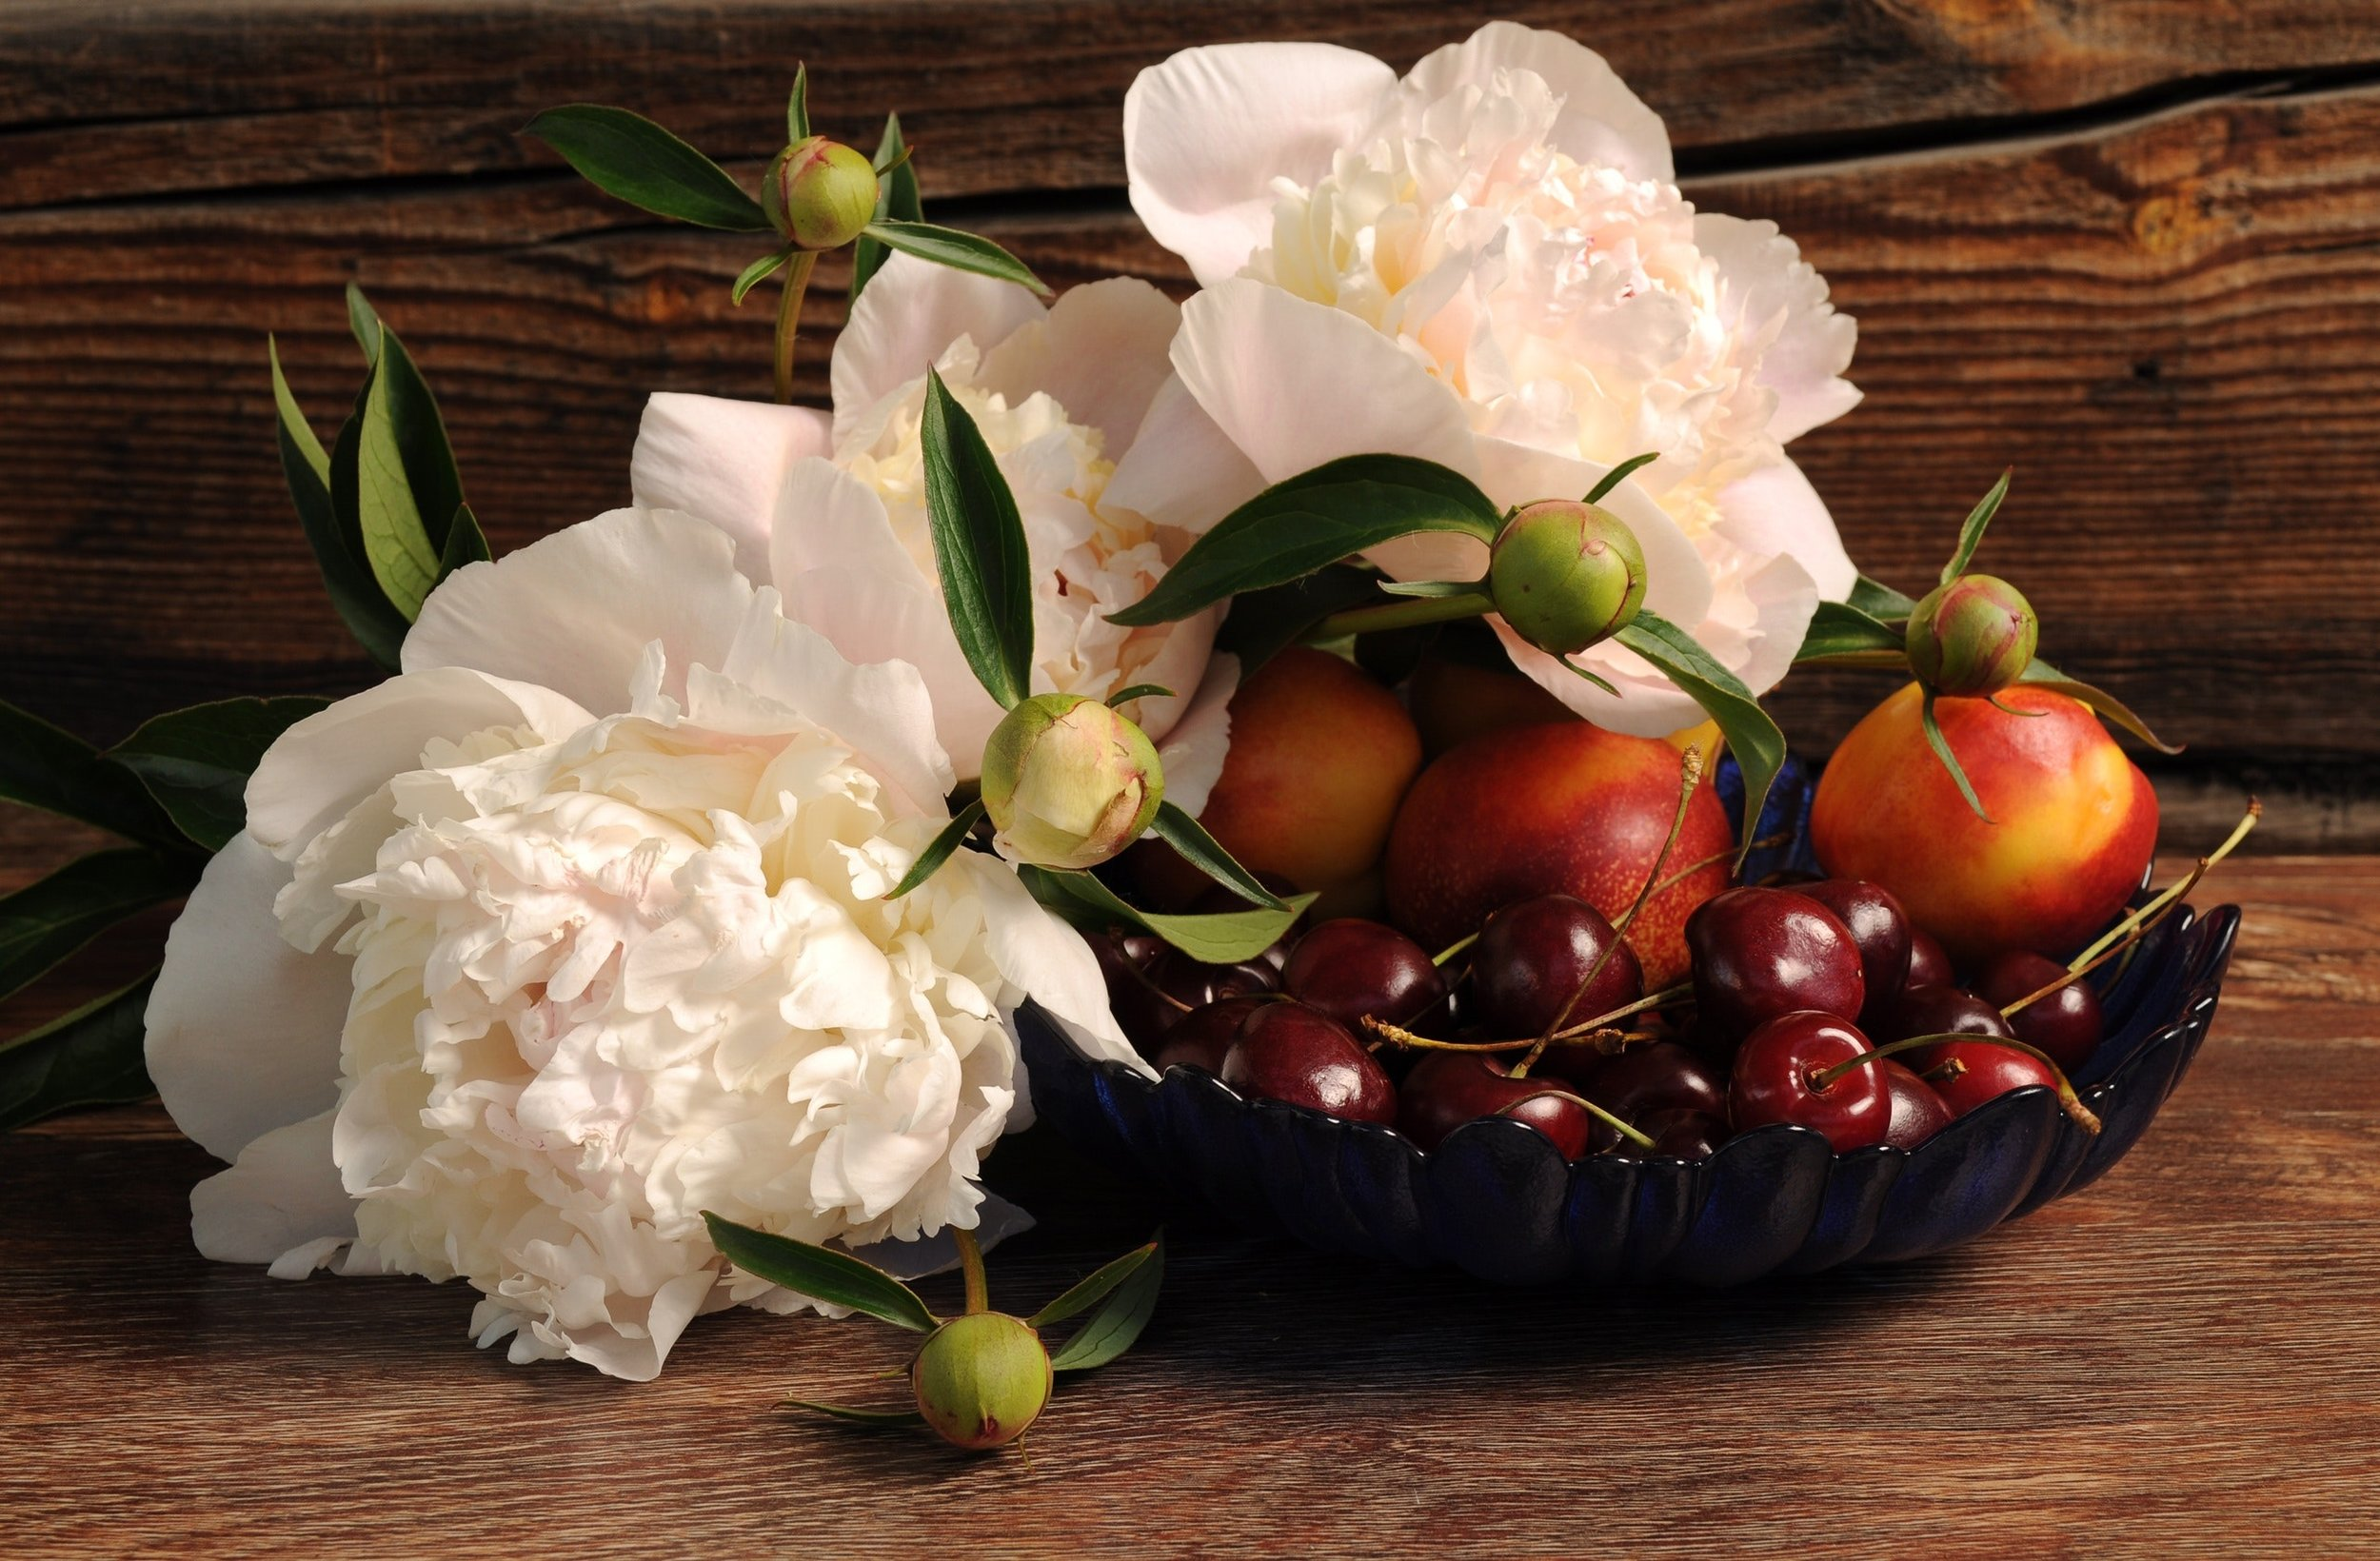 cherries-flora-flowers-33123.jpg